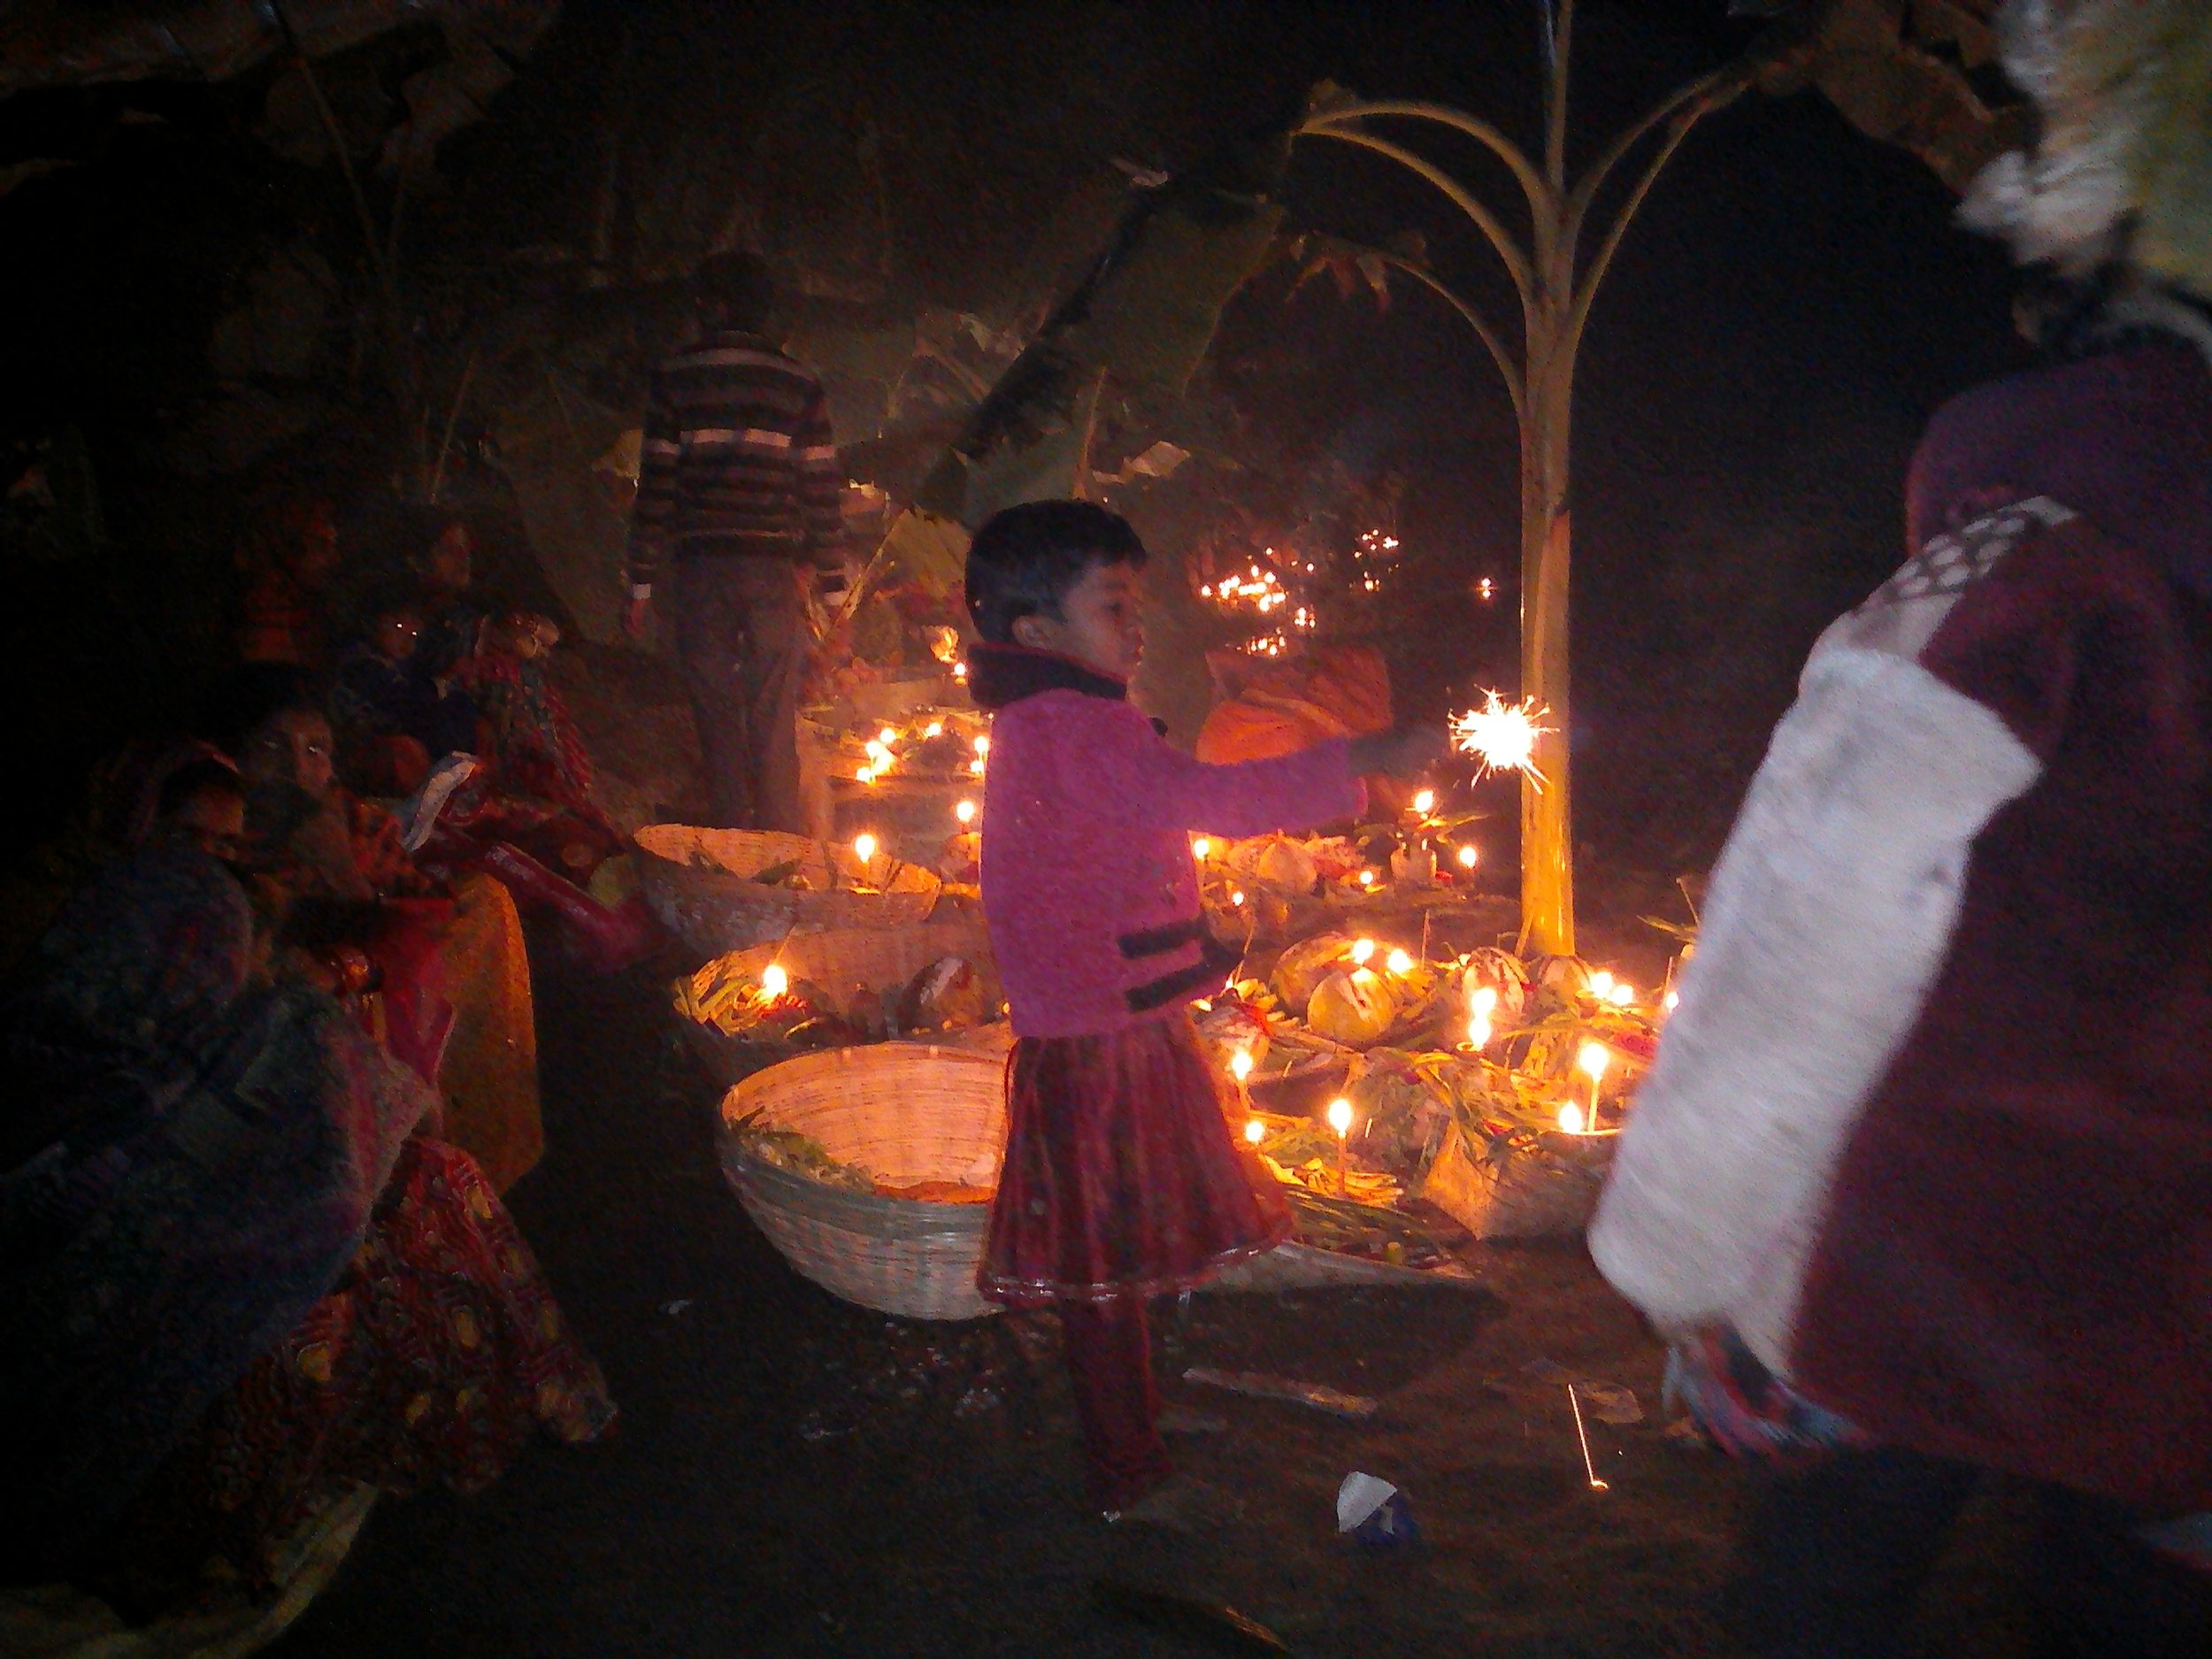 A child lights a sparkler in the morning while observing Chhath prayer. Credit: Zaheeb Ajmal